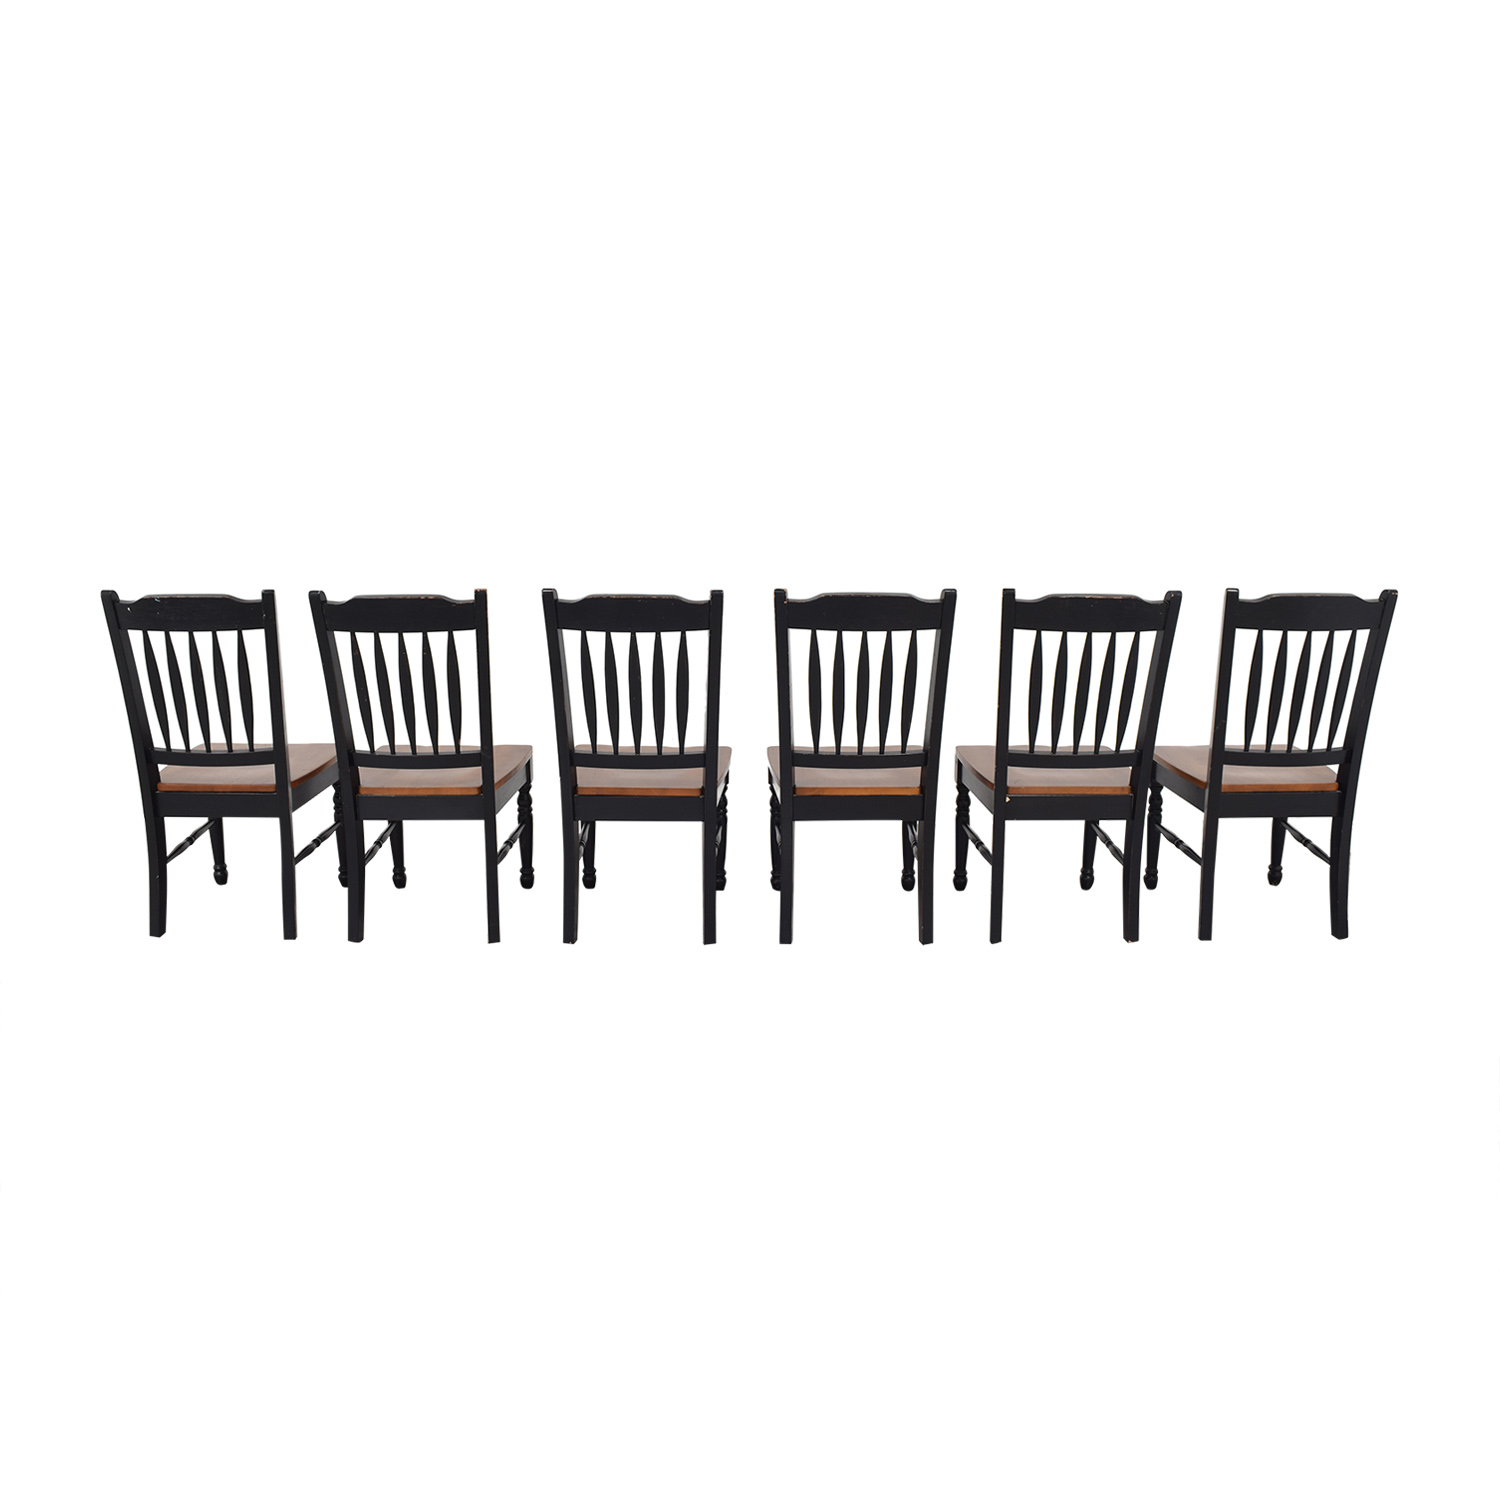 Pottery Barn Pottery Barn Spindle Back Dining Chairs nj